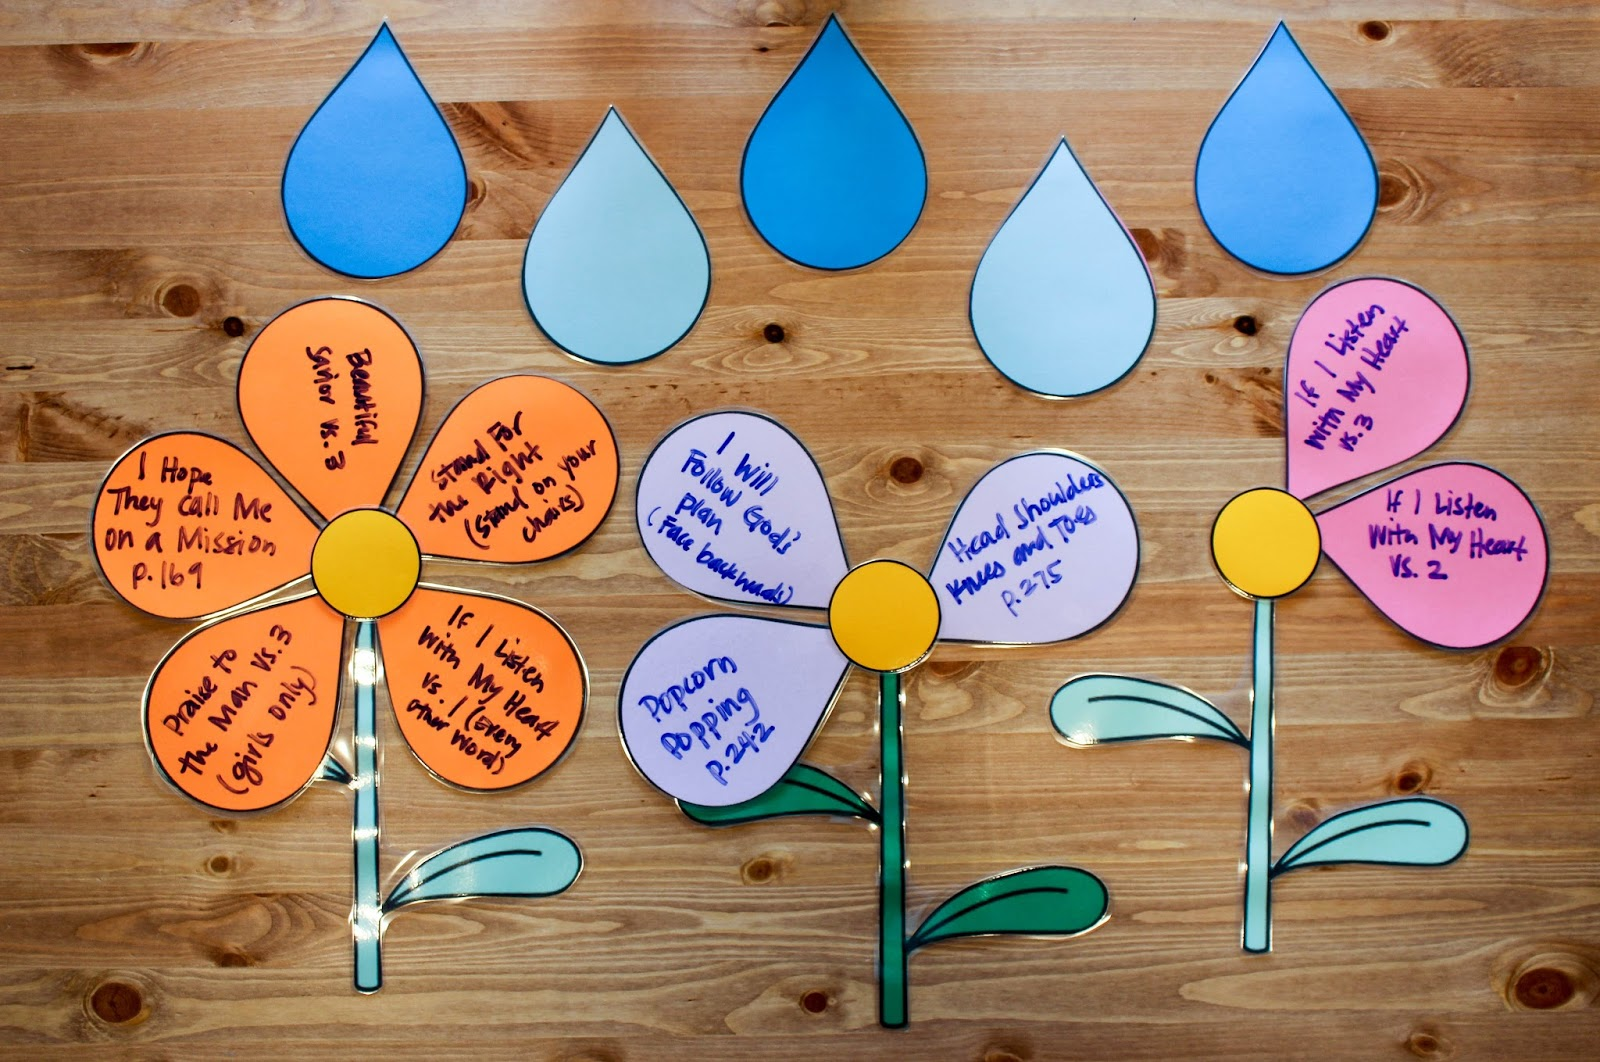 Camille S Primary Ideas April Showers Bring May Flowers